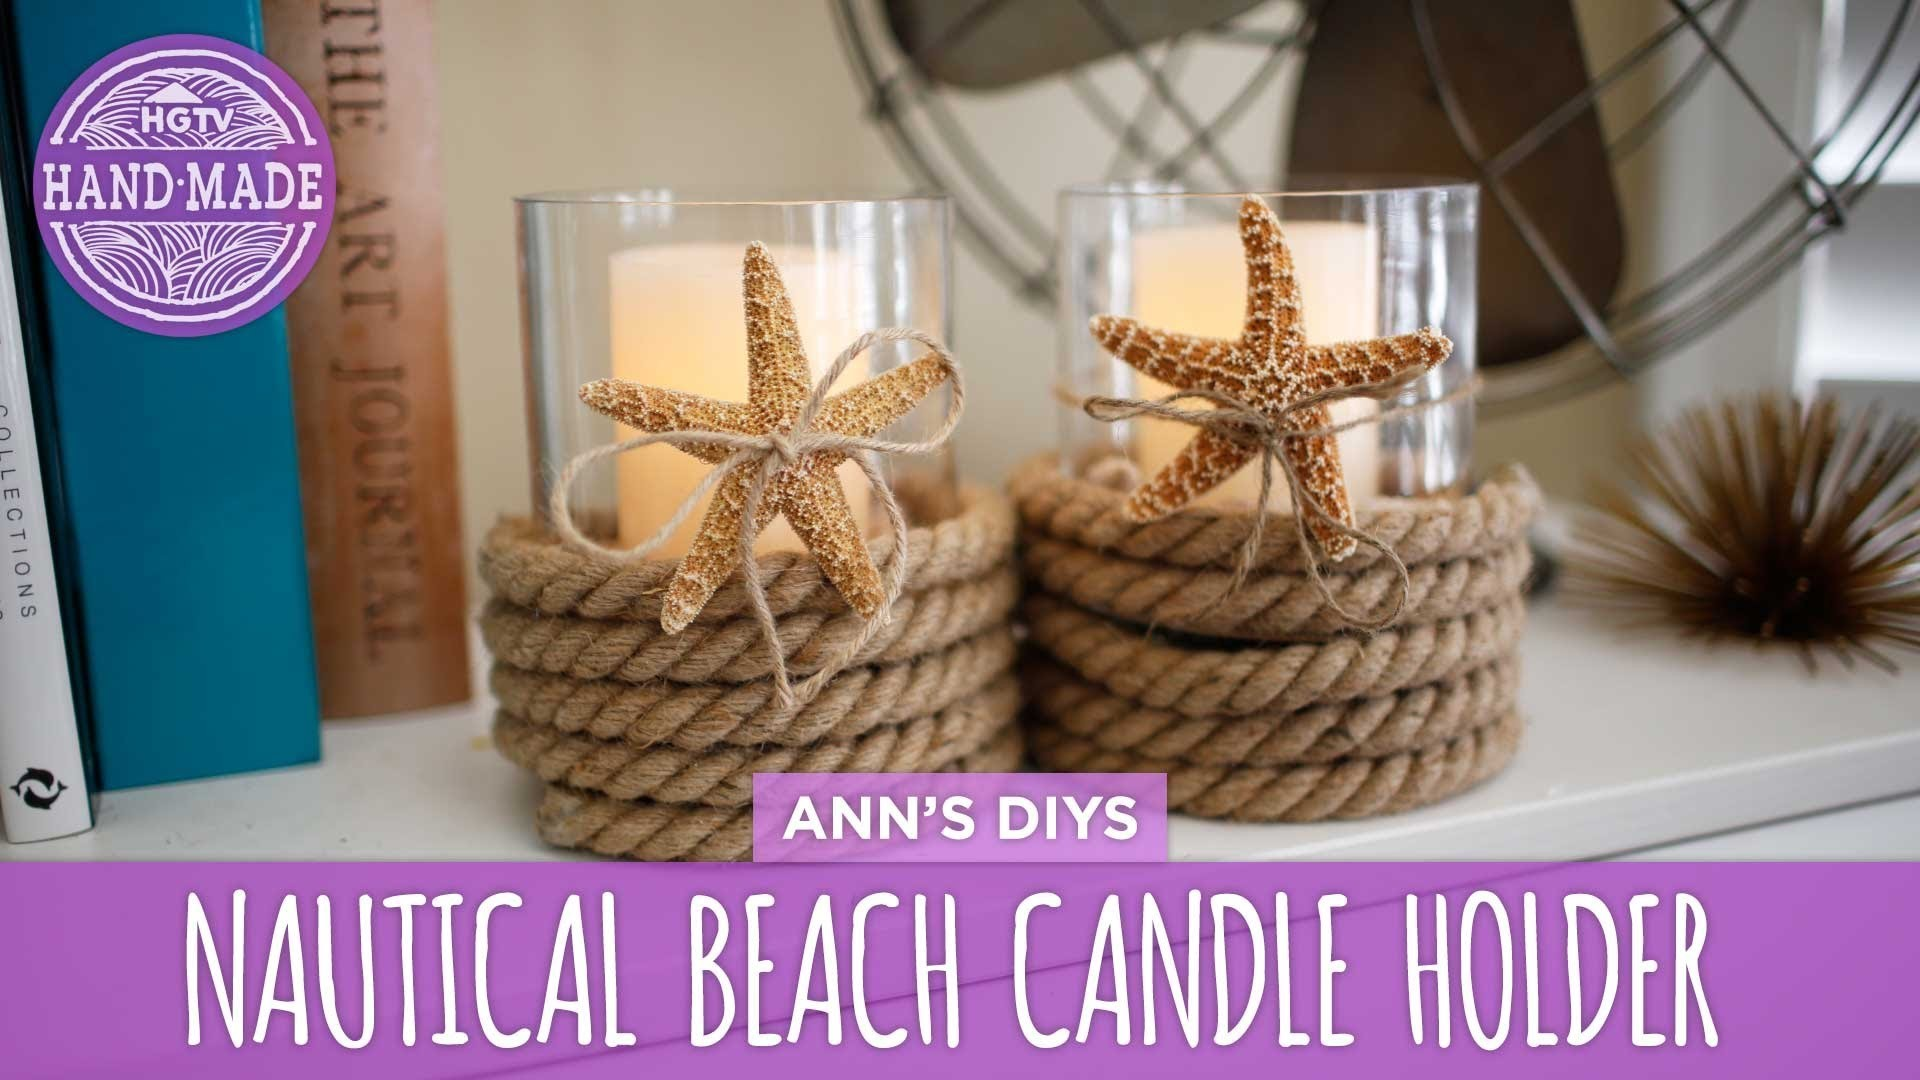 Nautical Beach Candle Holder - HGTV Handmade